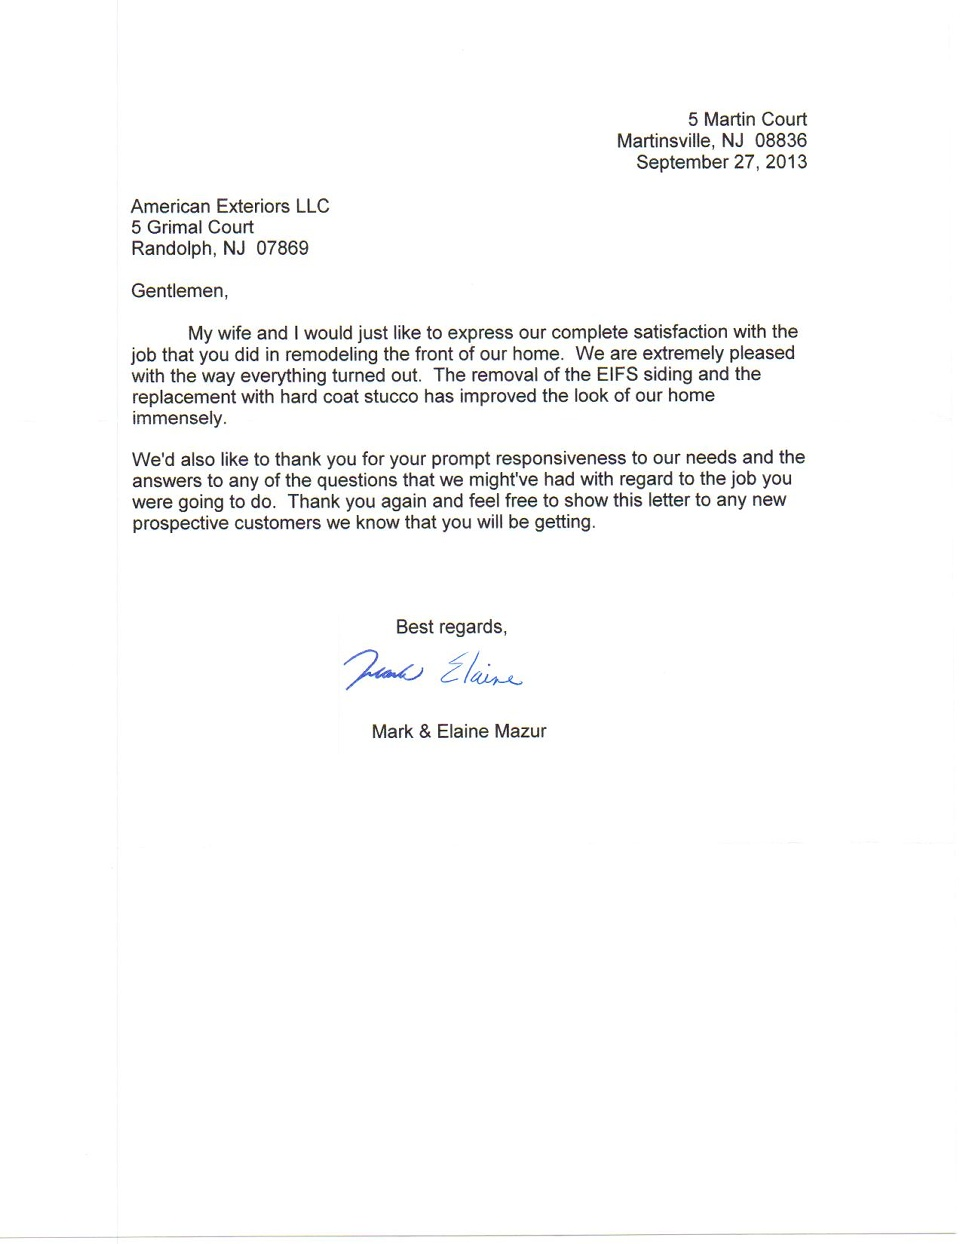 Letter of recommendation - Somerset County